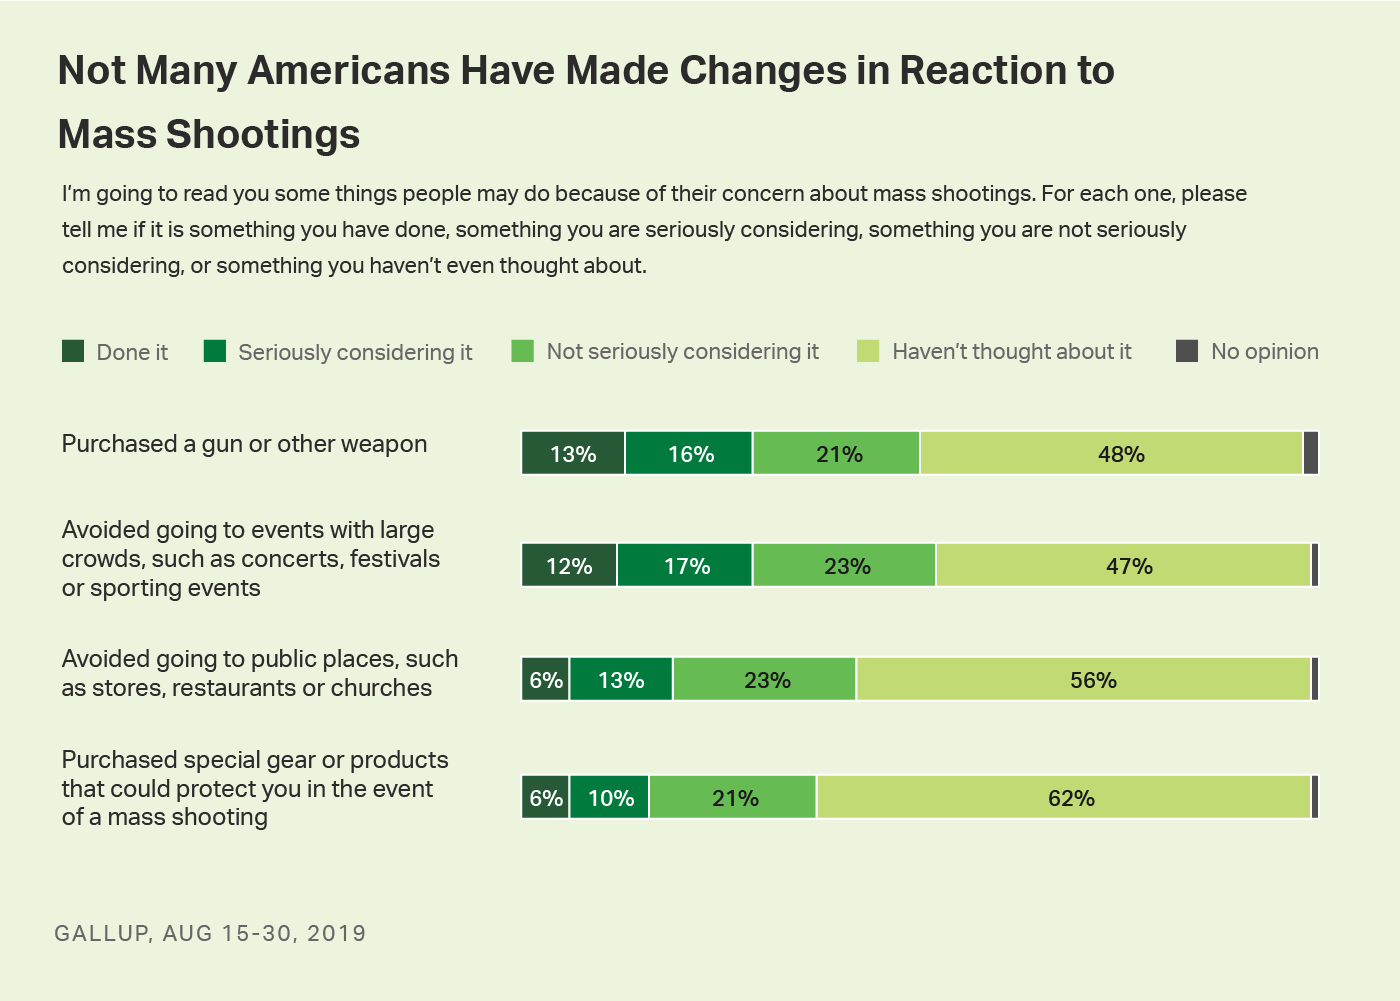 Bar charts. Results for four actions Americans might take because of their concern about mass shootings.